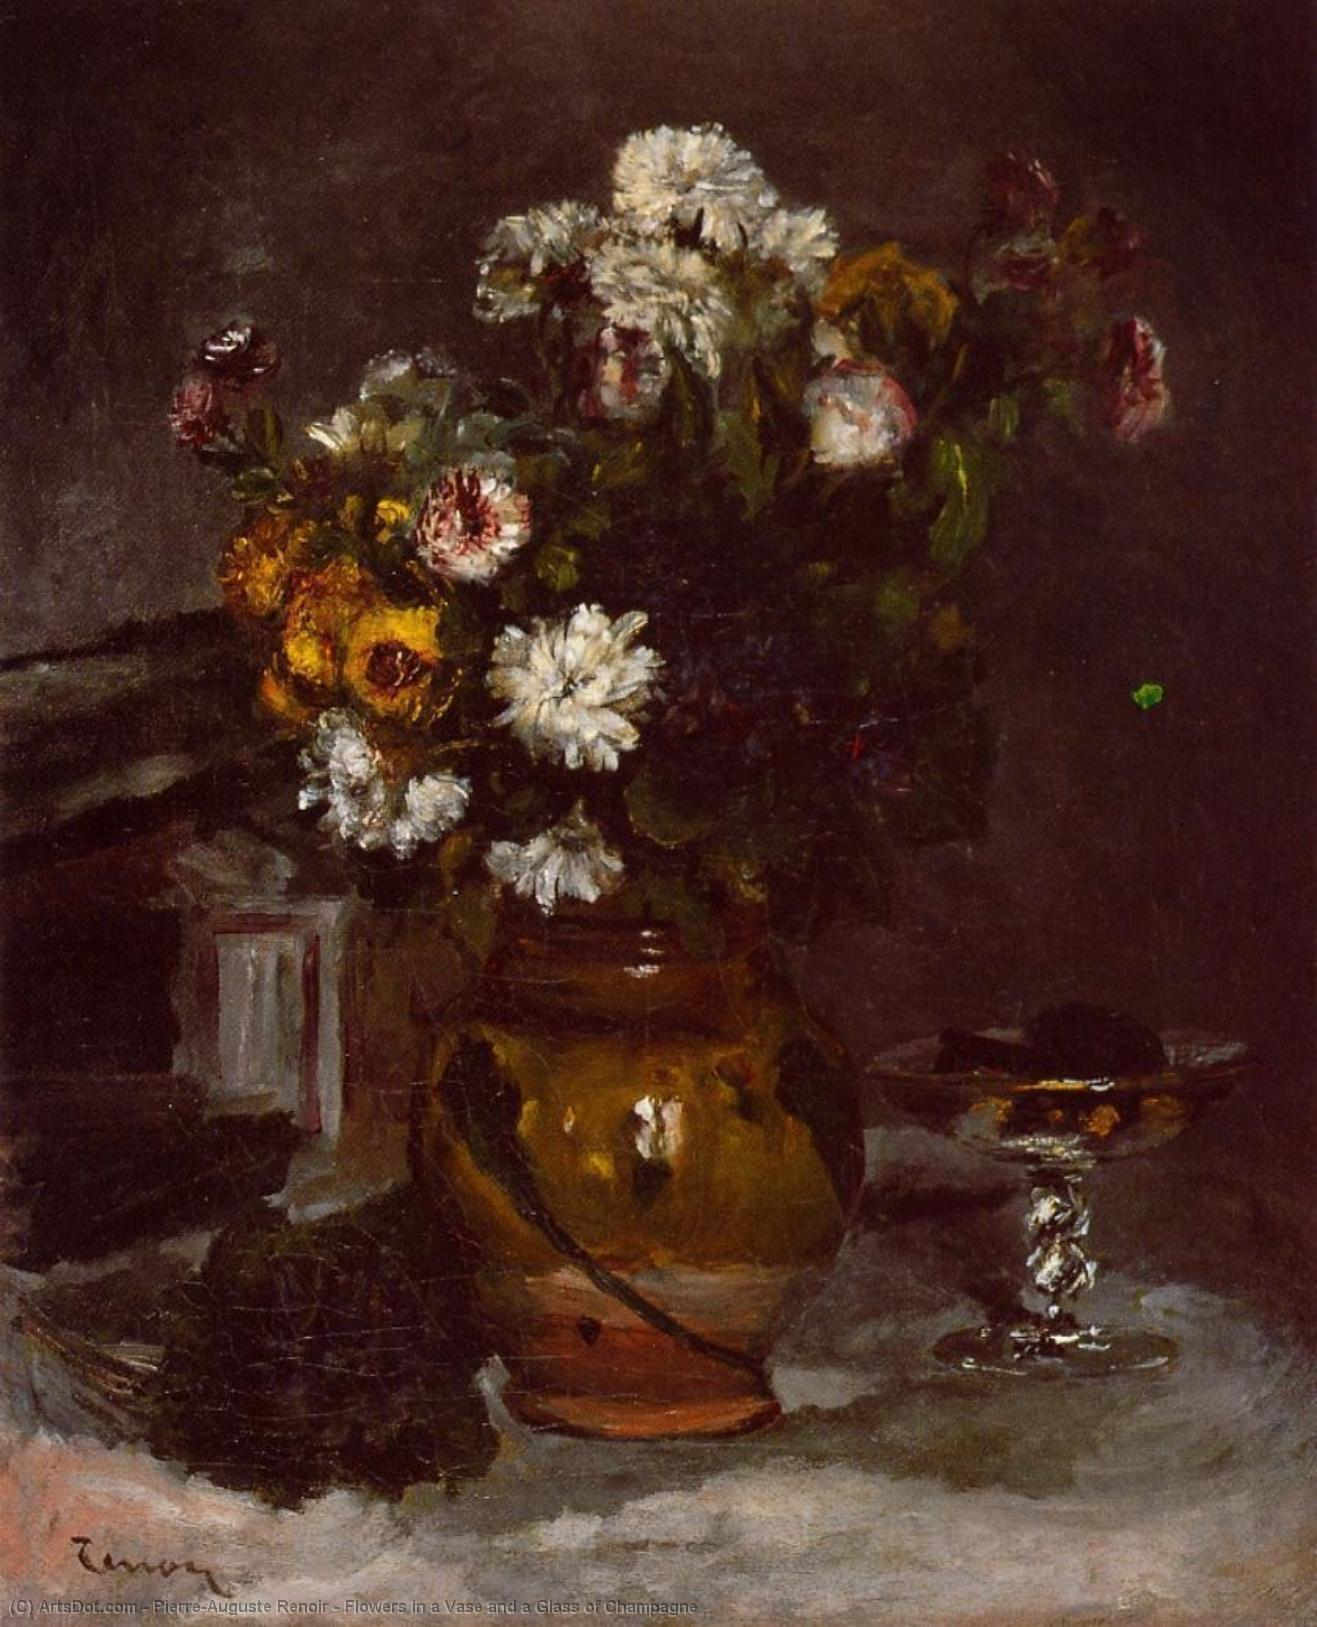 Wikioo.org - The Encyclopedia of Fine Arts - Painting, Artwork by Pierre-Auguste Renoir - Flowers in a Vase and a Glass of Champagne